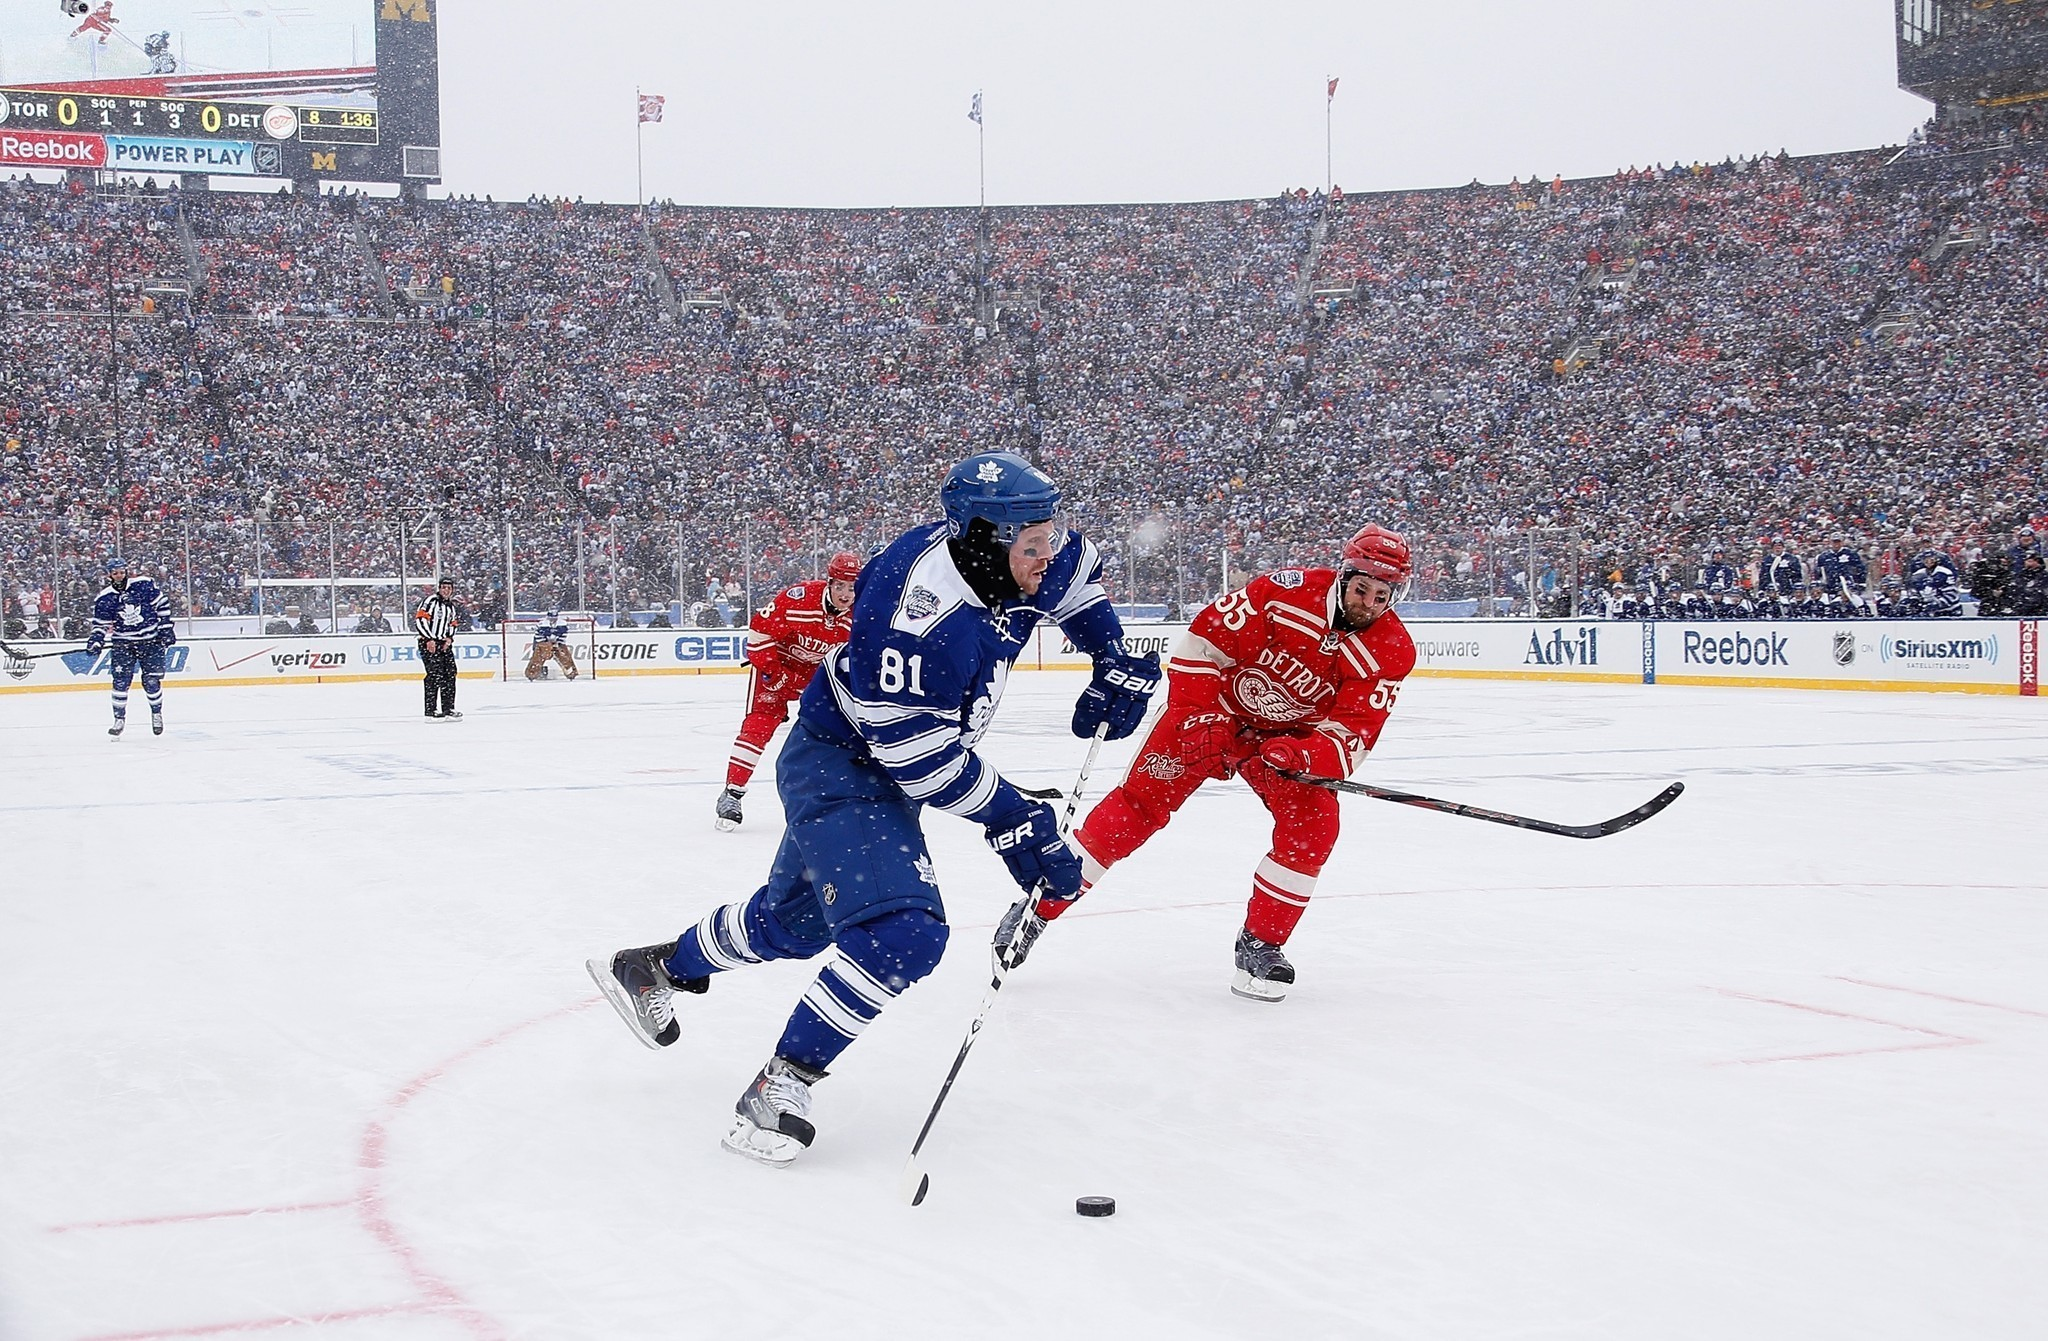 dc52b1a757b Leafs edge Wings in chilly Winter Classic - Chicago Tribune